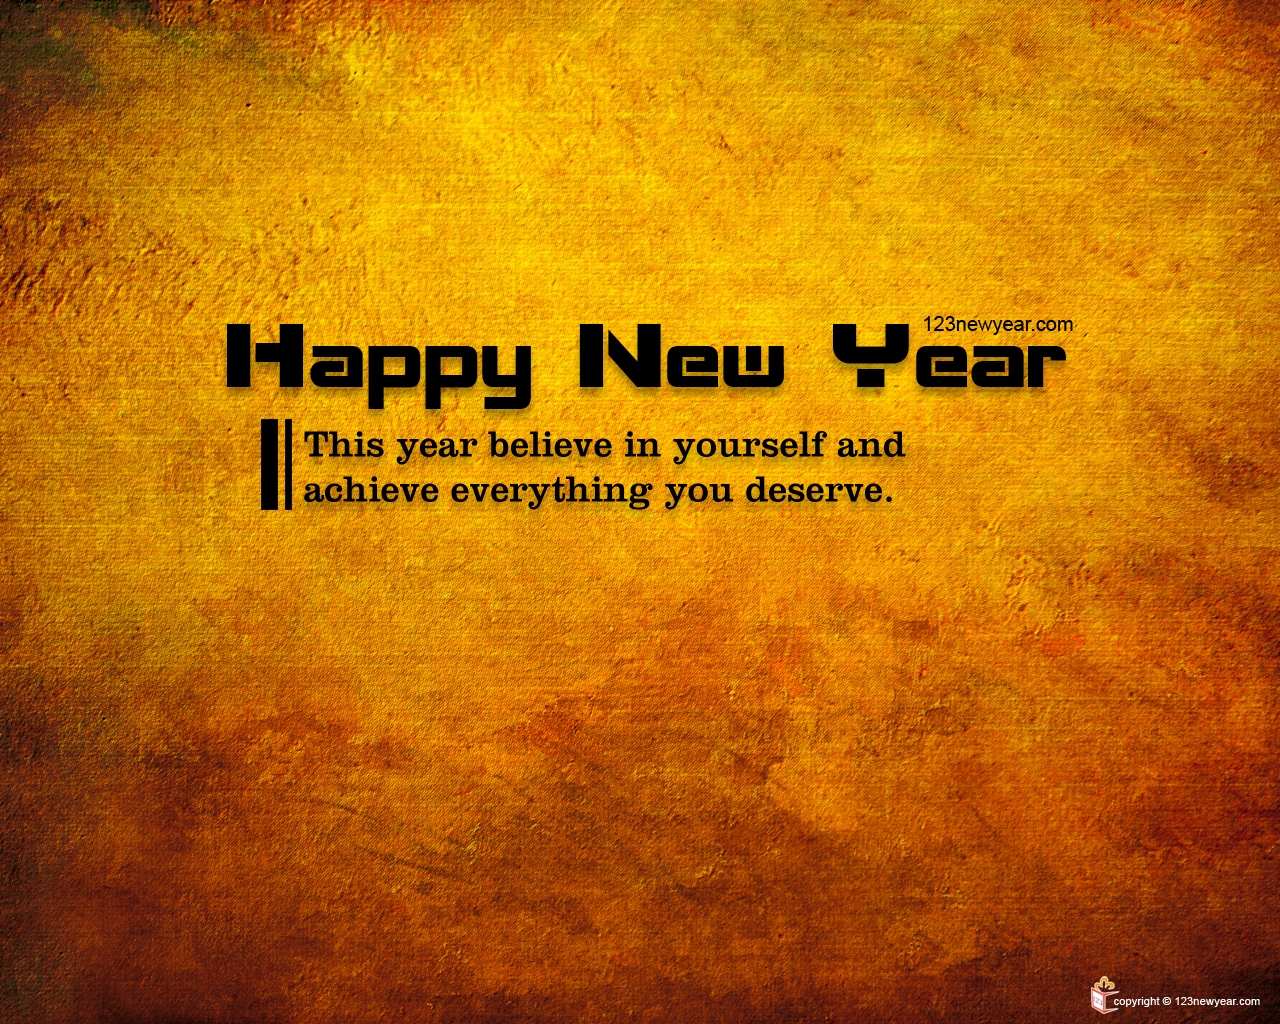 2015 new year messages for greetings happy new year 2015 2015 wallpapers kristyandbryce Images